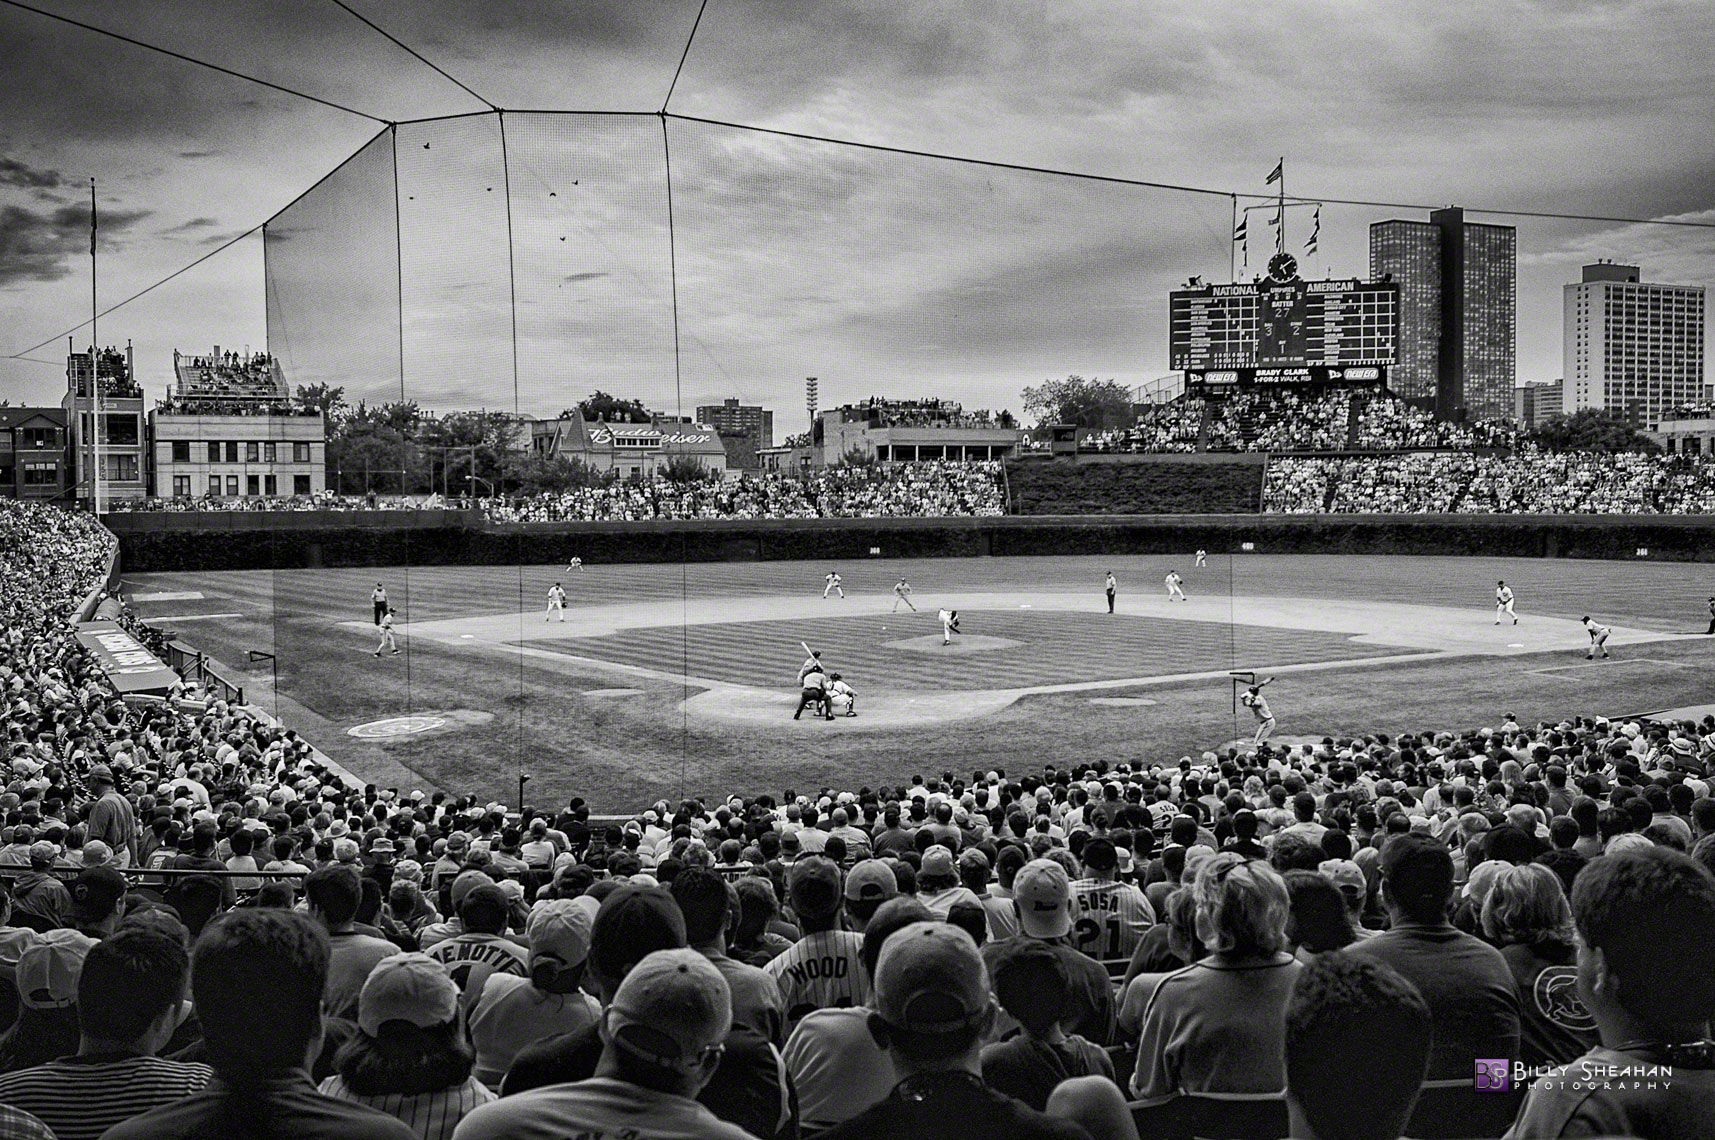 The_Friendly__but_slightly_gloomy__Confines_of_Wrigley_Field_BrewersVsCubs25Aug04-039_BW-2_D